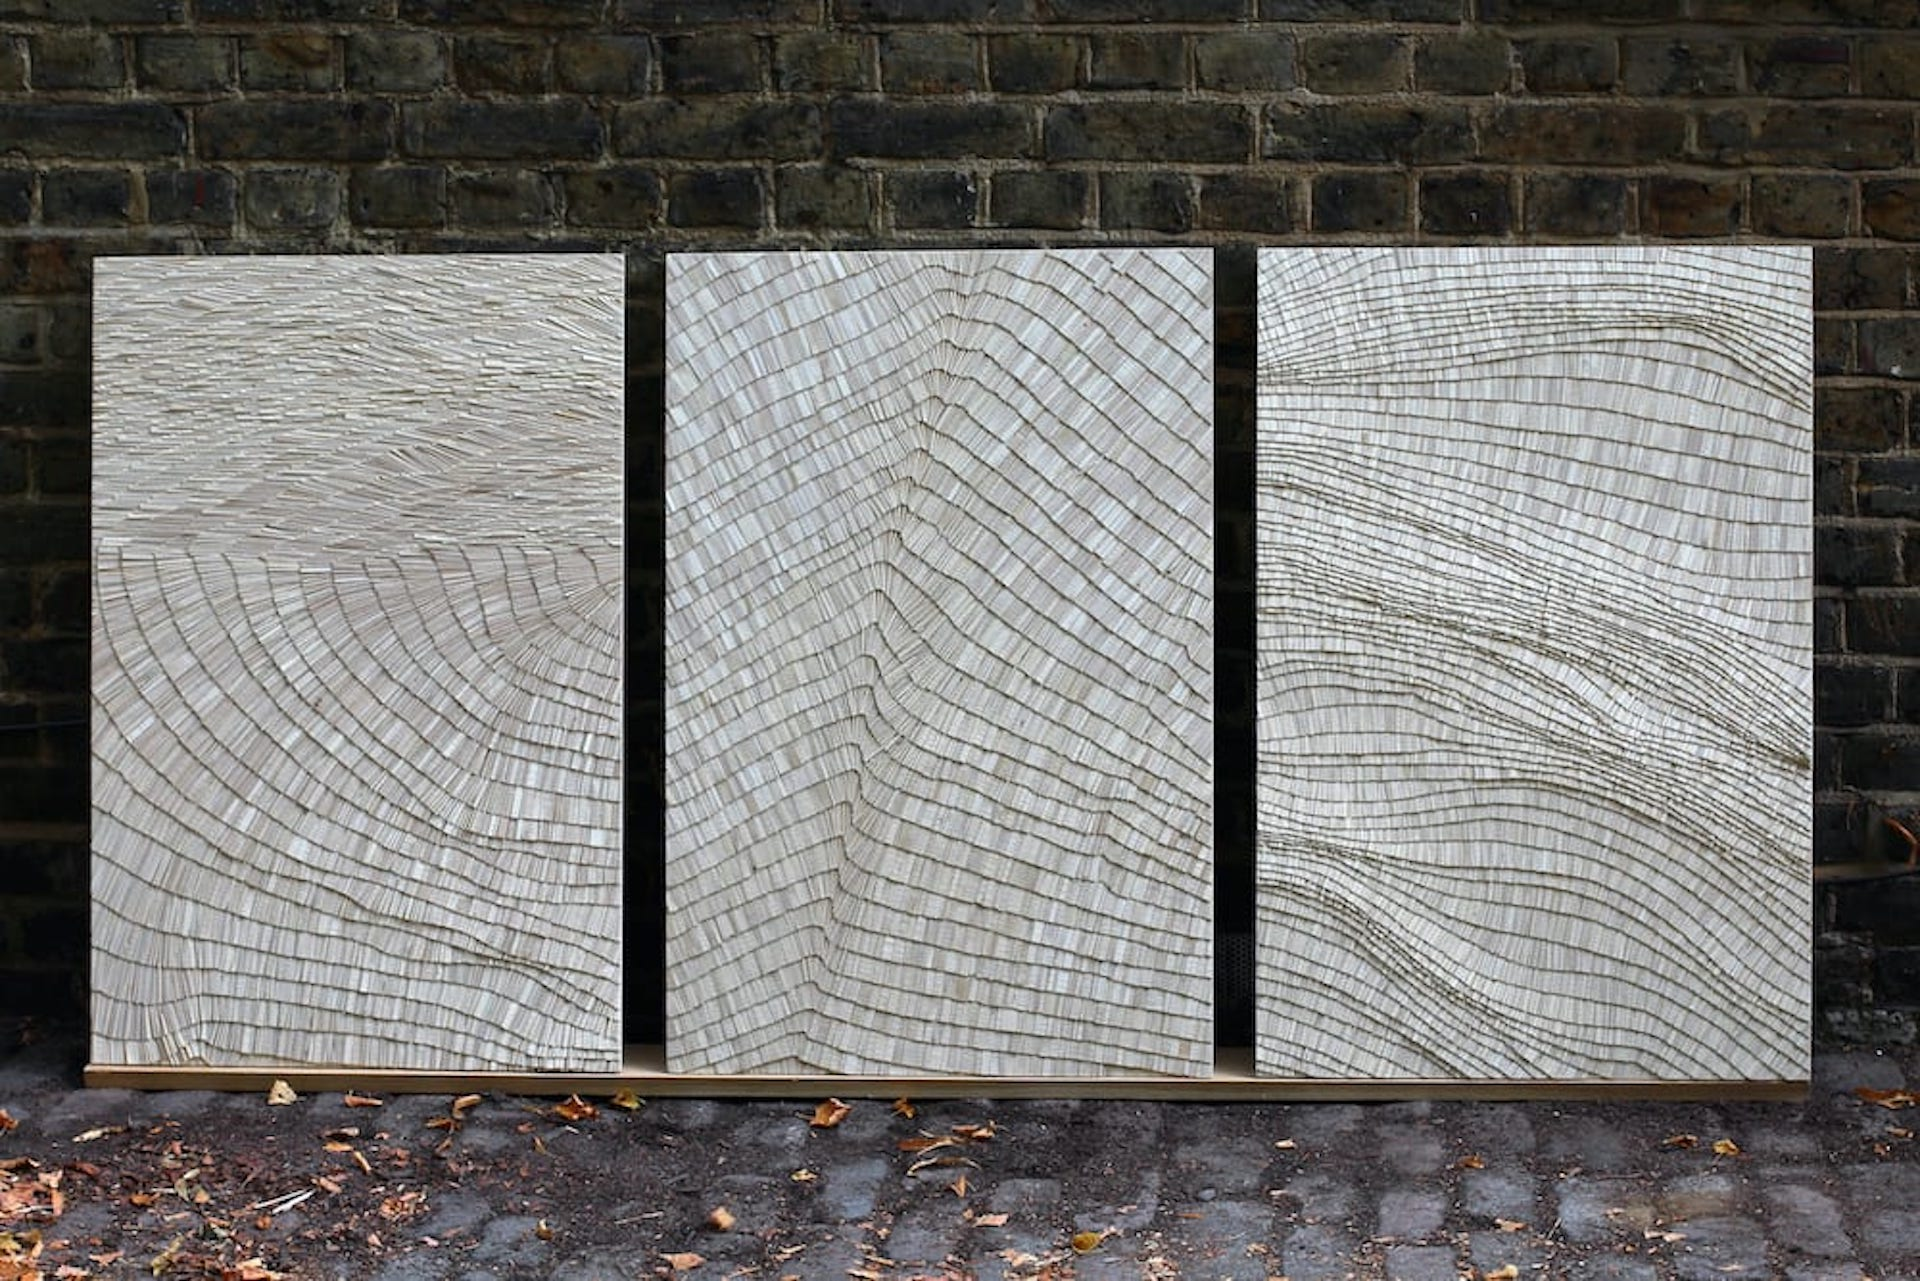 The Hill 10, 11 & 12 by Wycliffe Stutchbury, 2020; composed of felled common holly. Photo © Sarah Myerscough Gallery